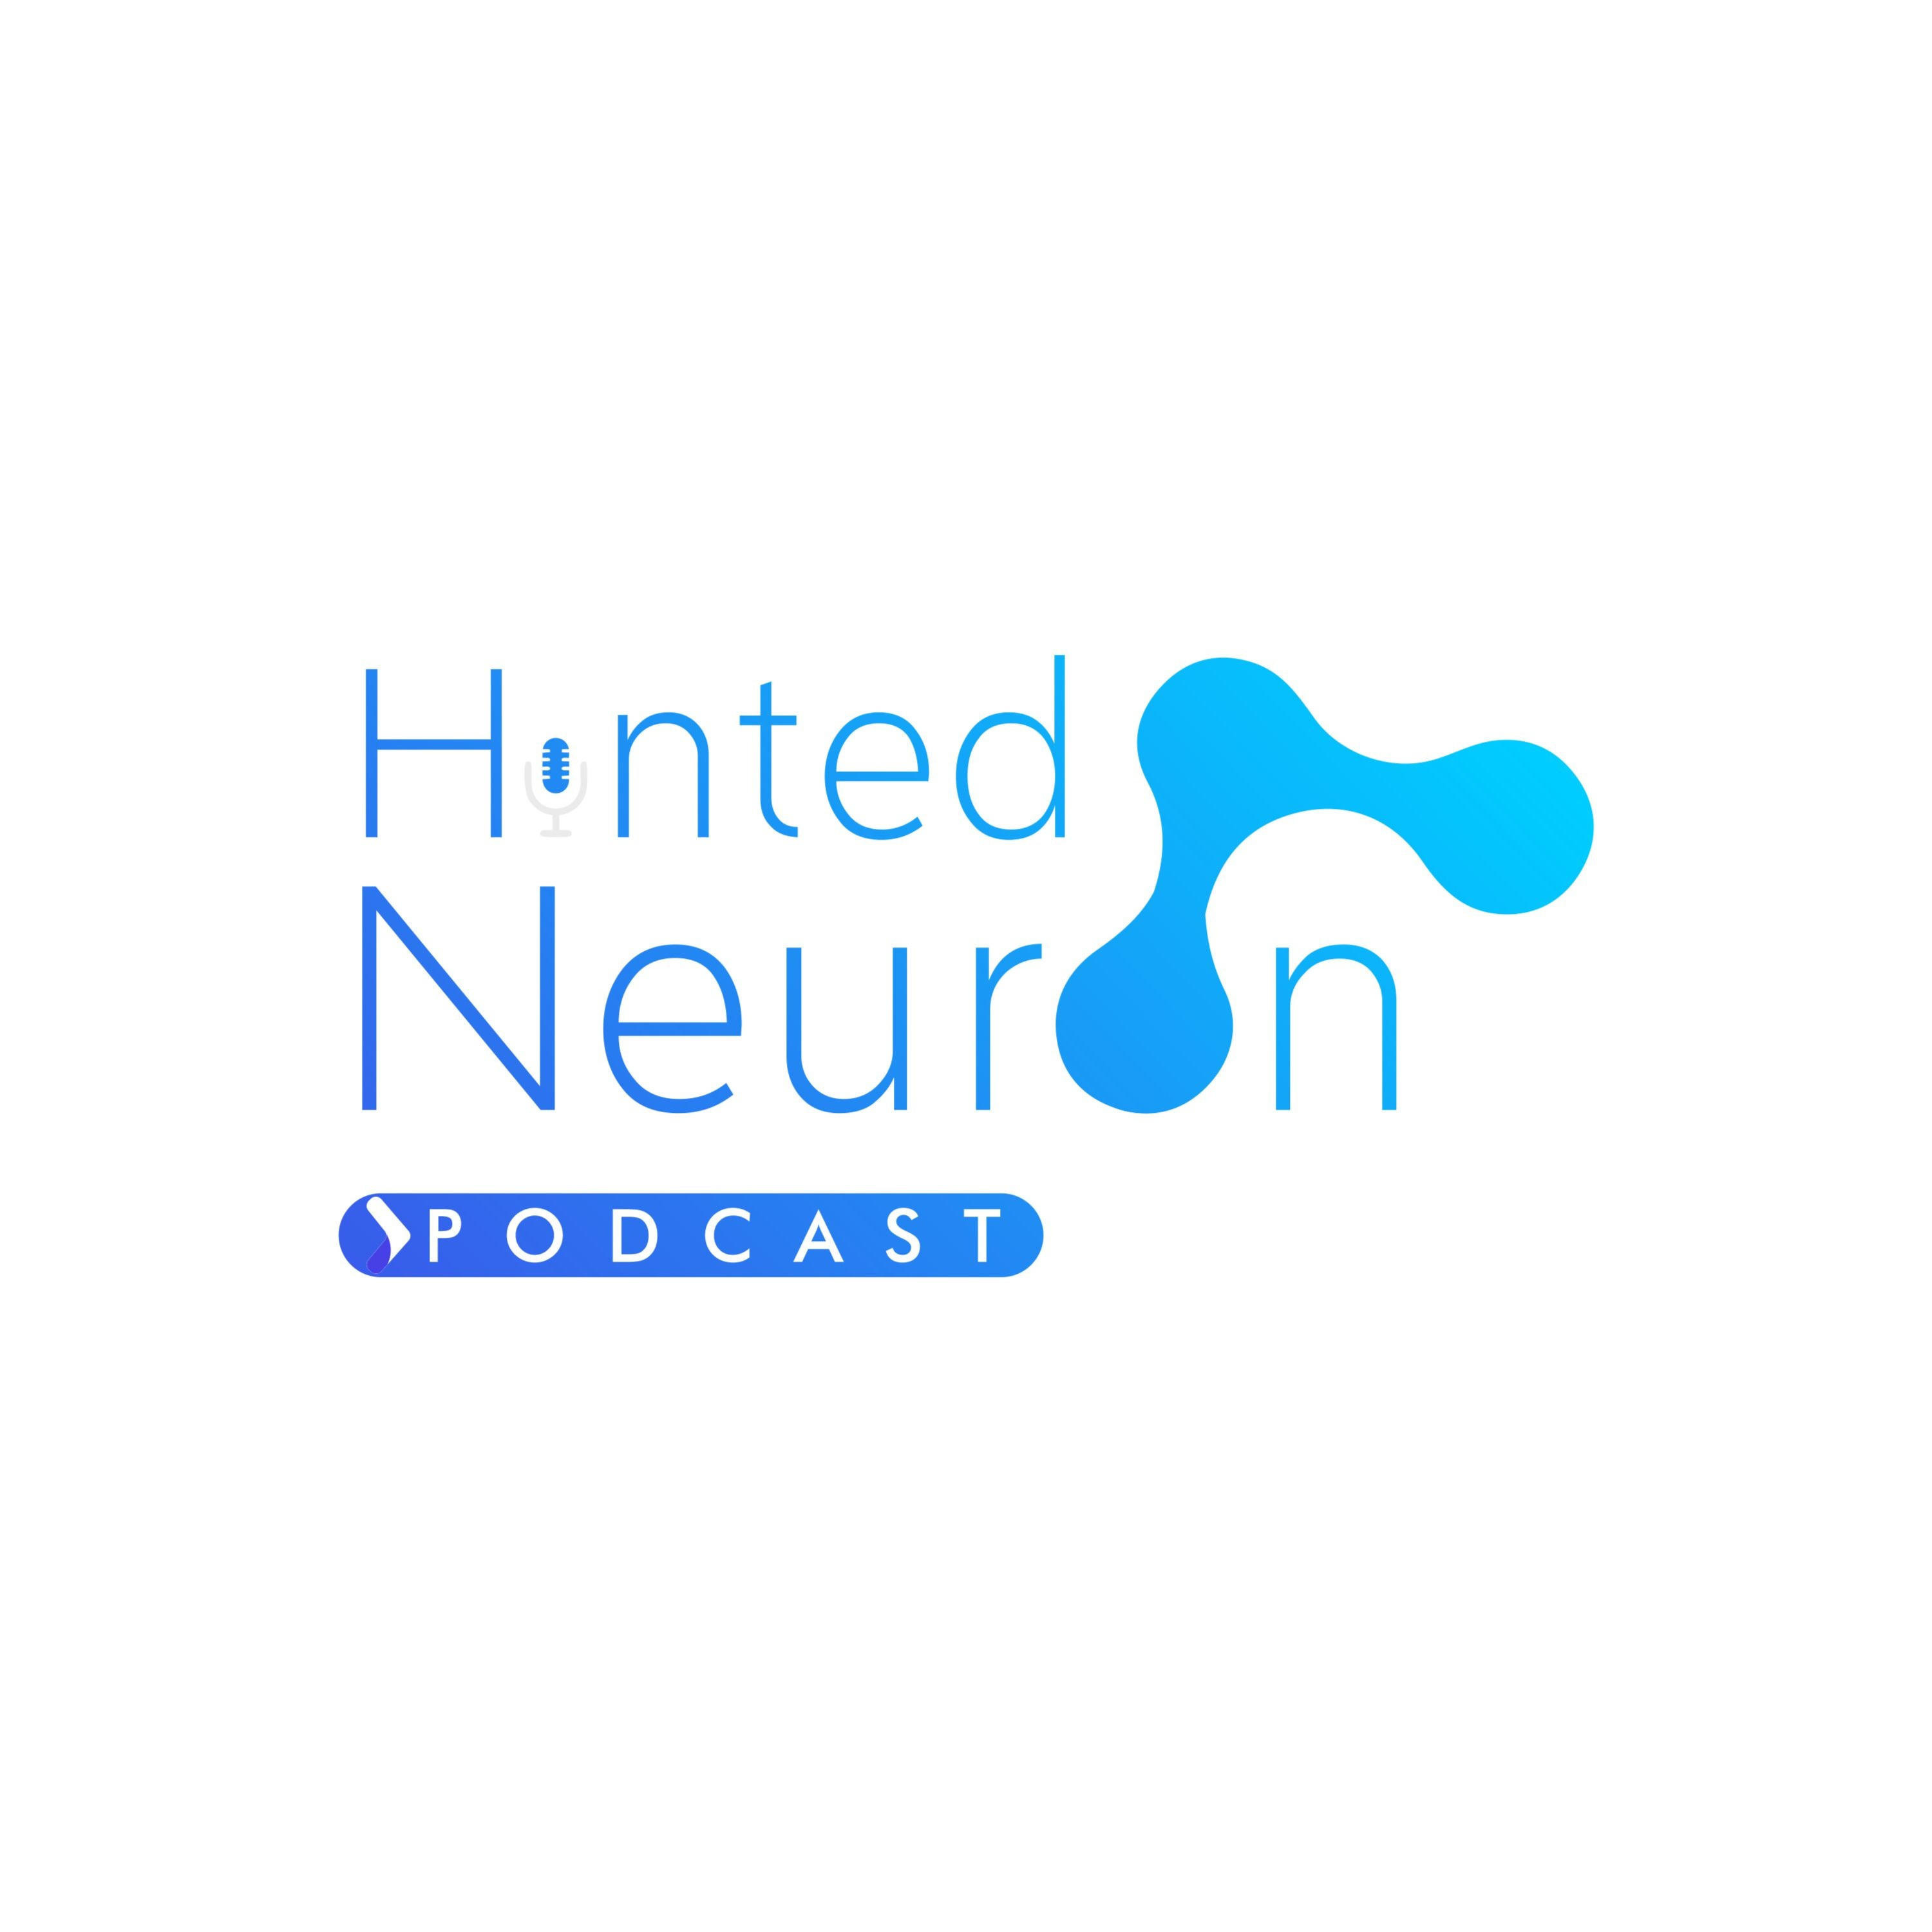 028 - Hinted Neuron Update